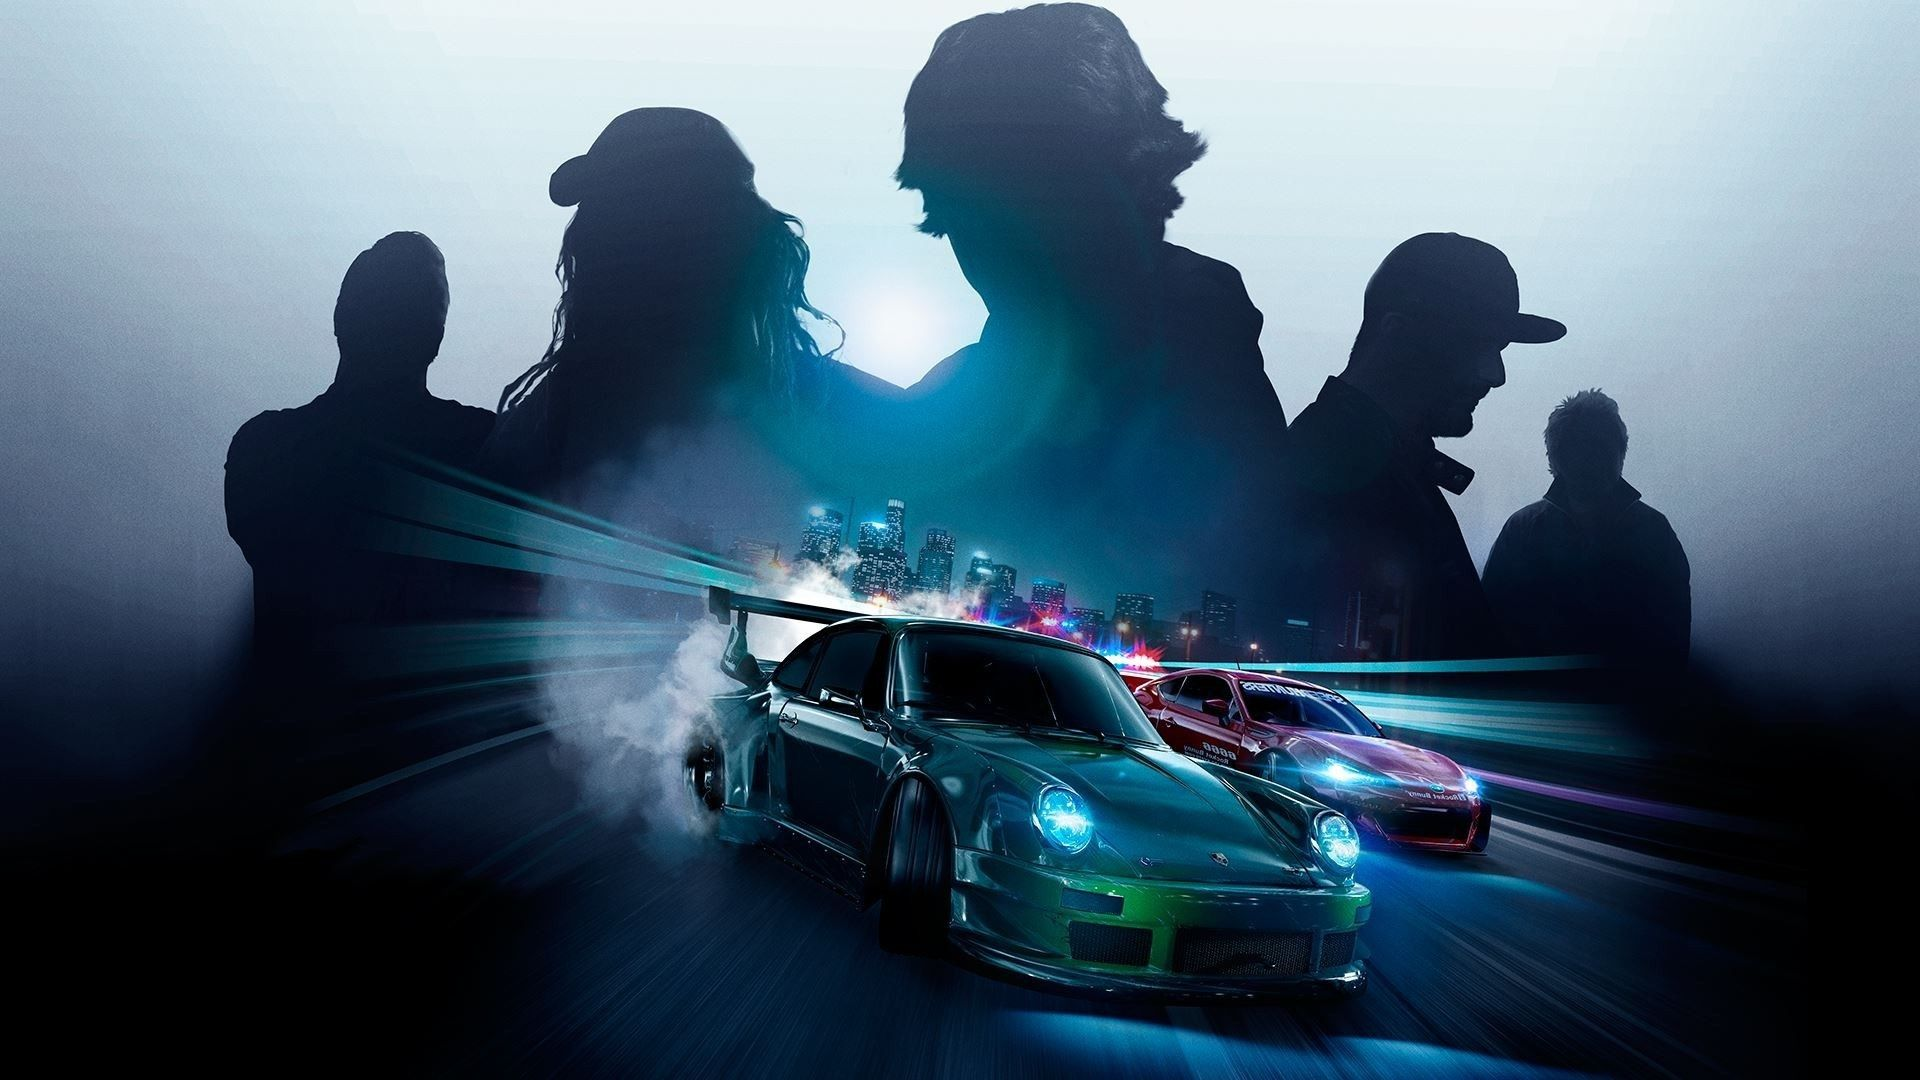 1920x1080 need for speed best wallpapers hd for desktop wallpapers 1920x1080 need for speed best wallpapers hd for desktop voltagebd Image collections